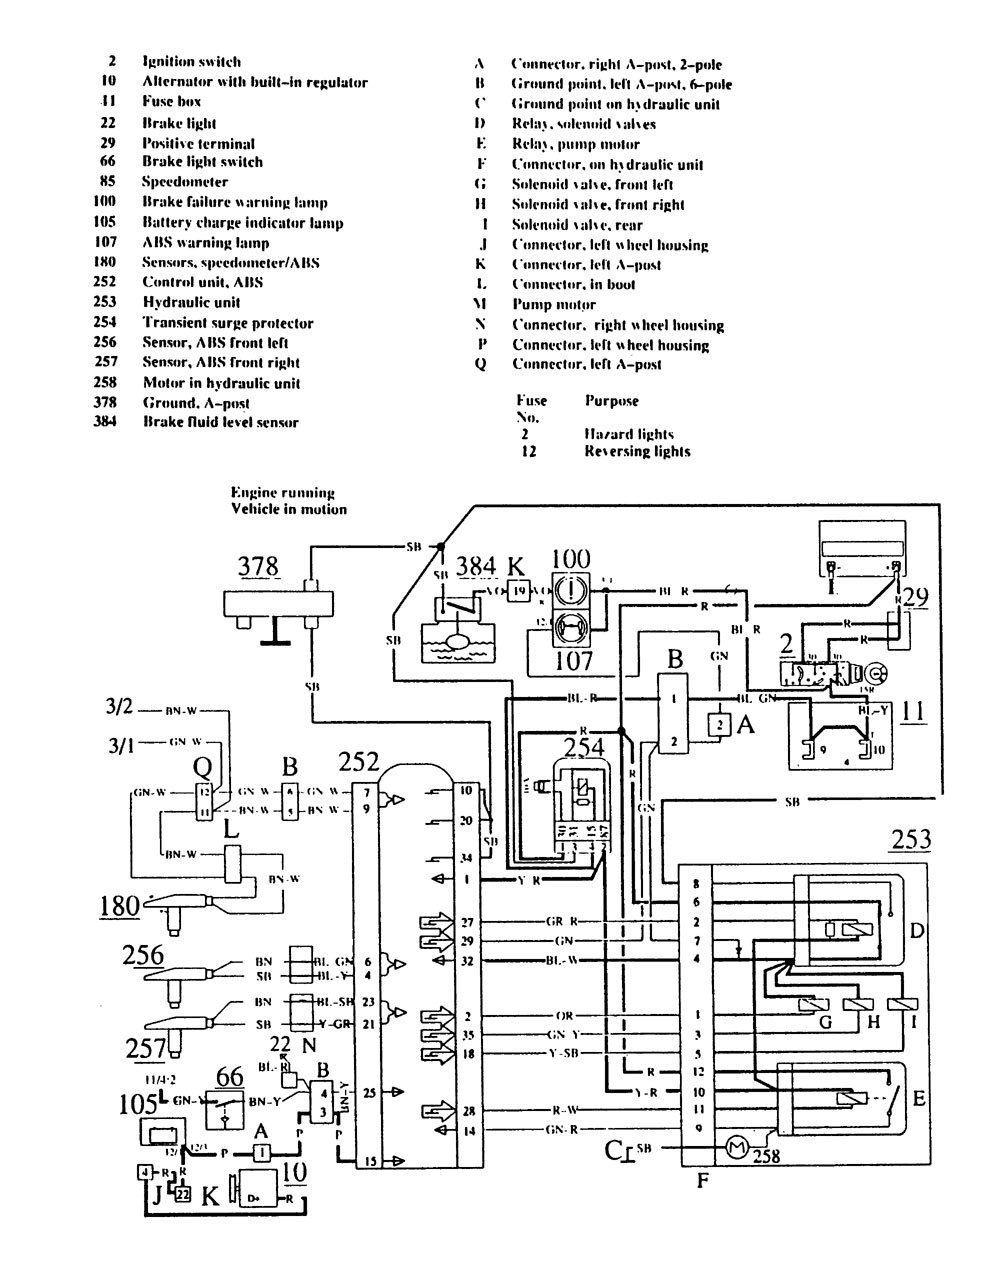 WRG-2833] Volvo 240 Wiring Diagram on